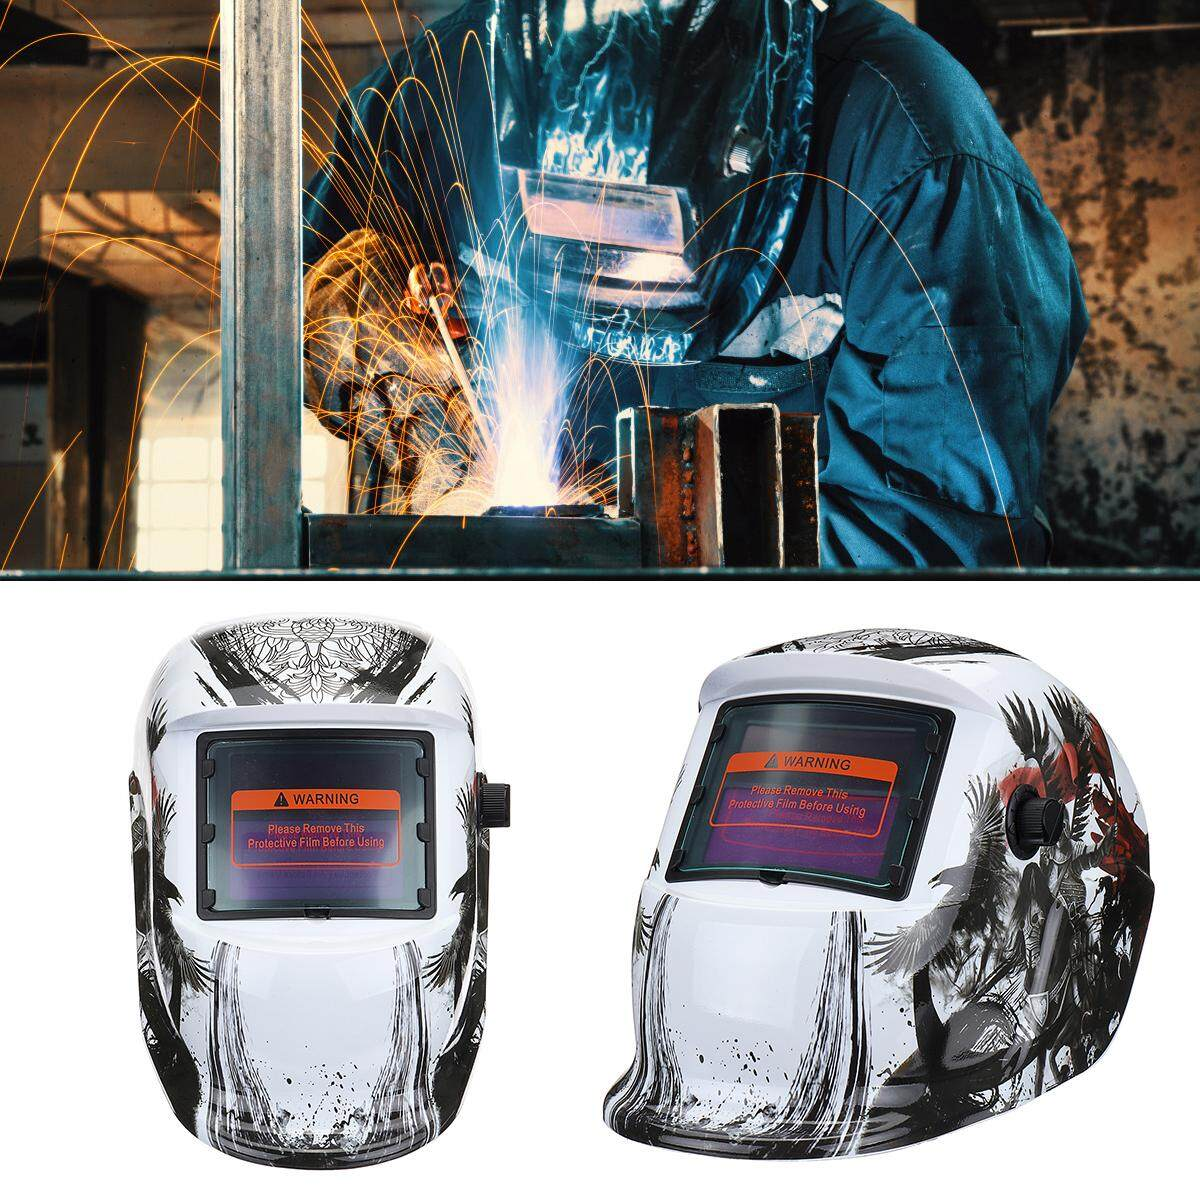 【Free Shipping + Flash Deal】Solar Power Automatic Dimming Welding Helmet Welding Mask Adjustable Head Band Automatic Photoelectric Welder Mask